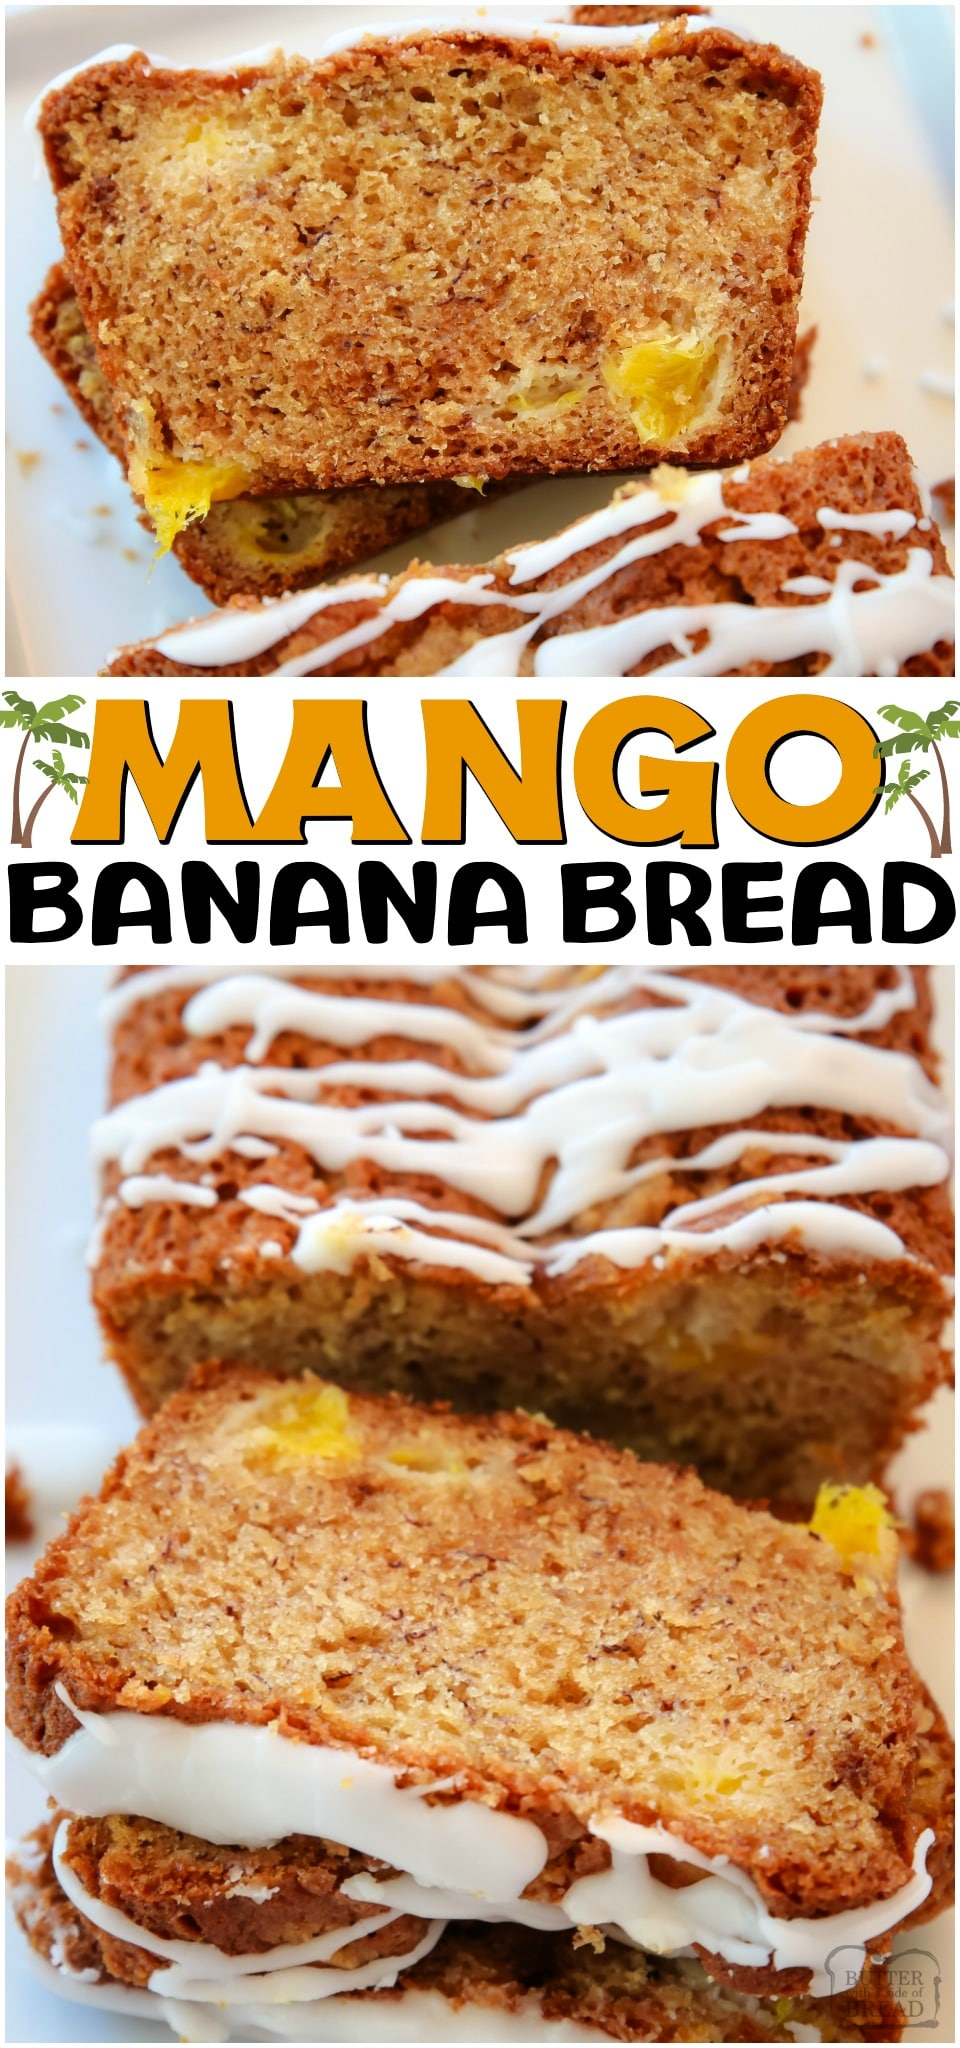 Mango Banana Bread made with ripe bananas and fresh mango, topped with a brown sugar streusel and drizzled with icing. A fantastic variation on a traditional banana bread recipe! #bread #banana #mango #baking #sweetbread #quickbread #recipe from BUTTER WITH A SIDE OF BREAD